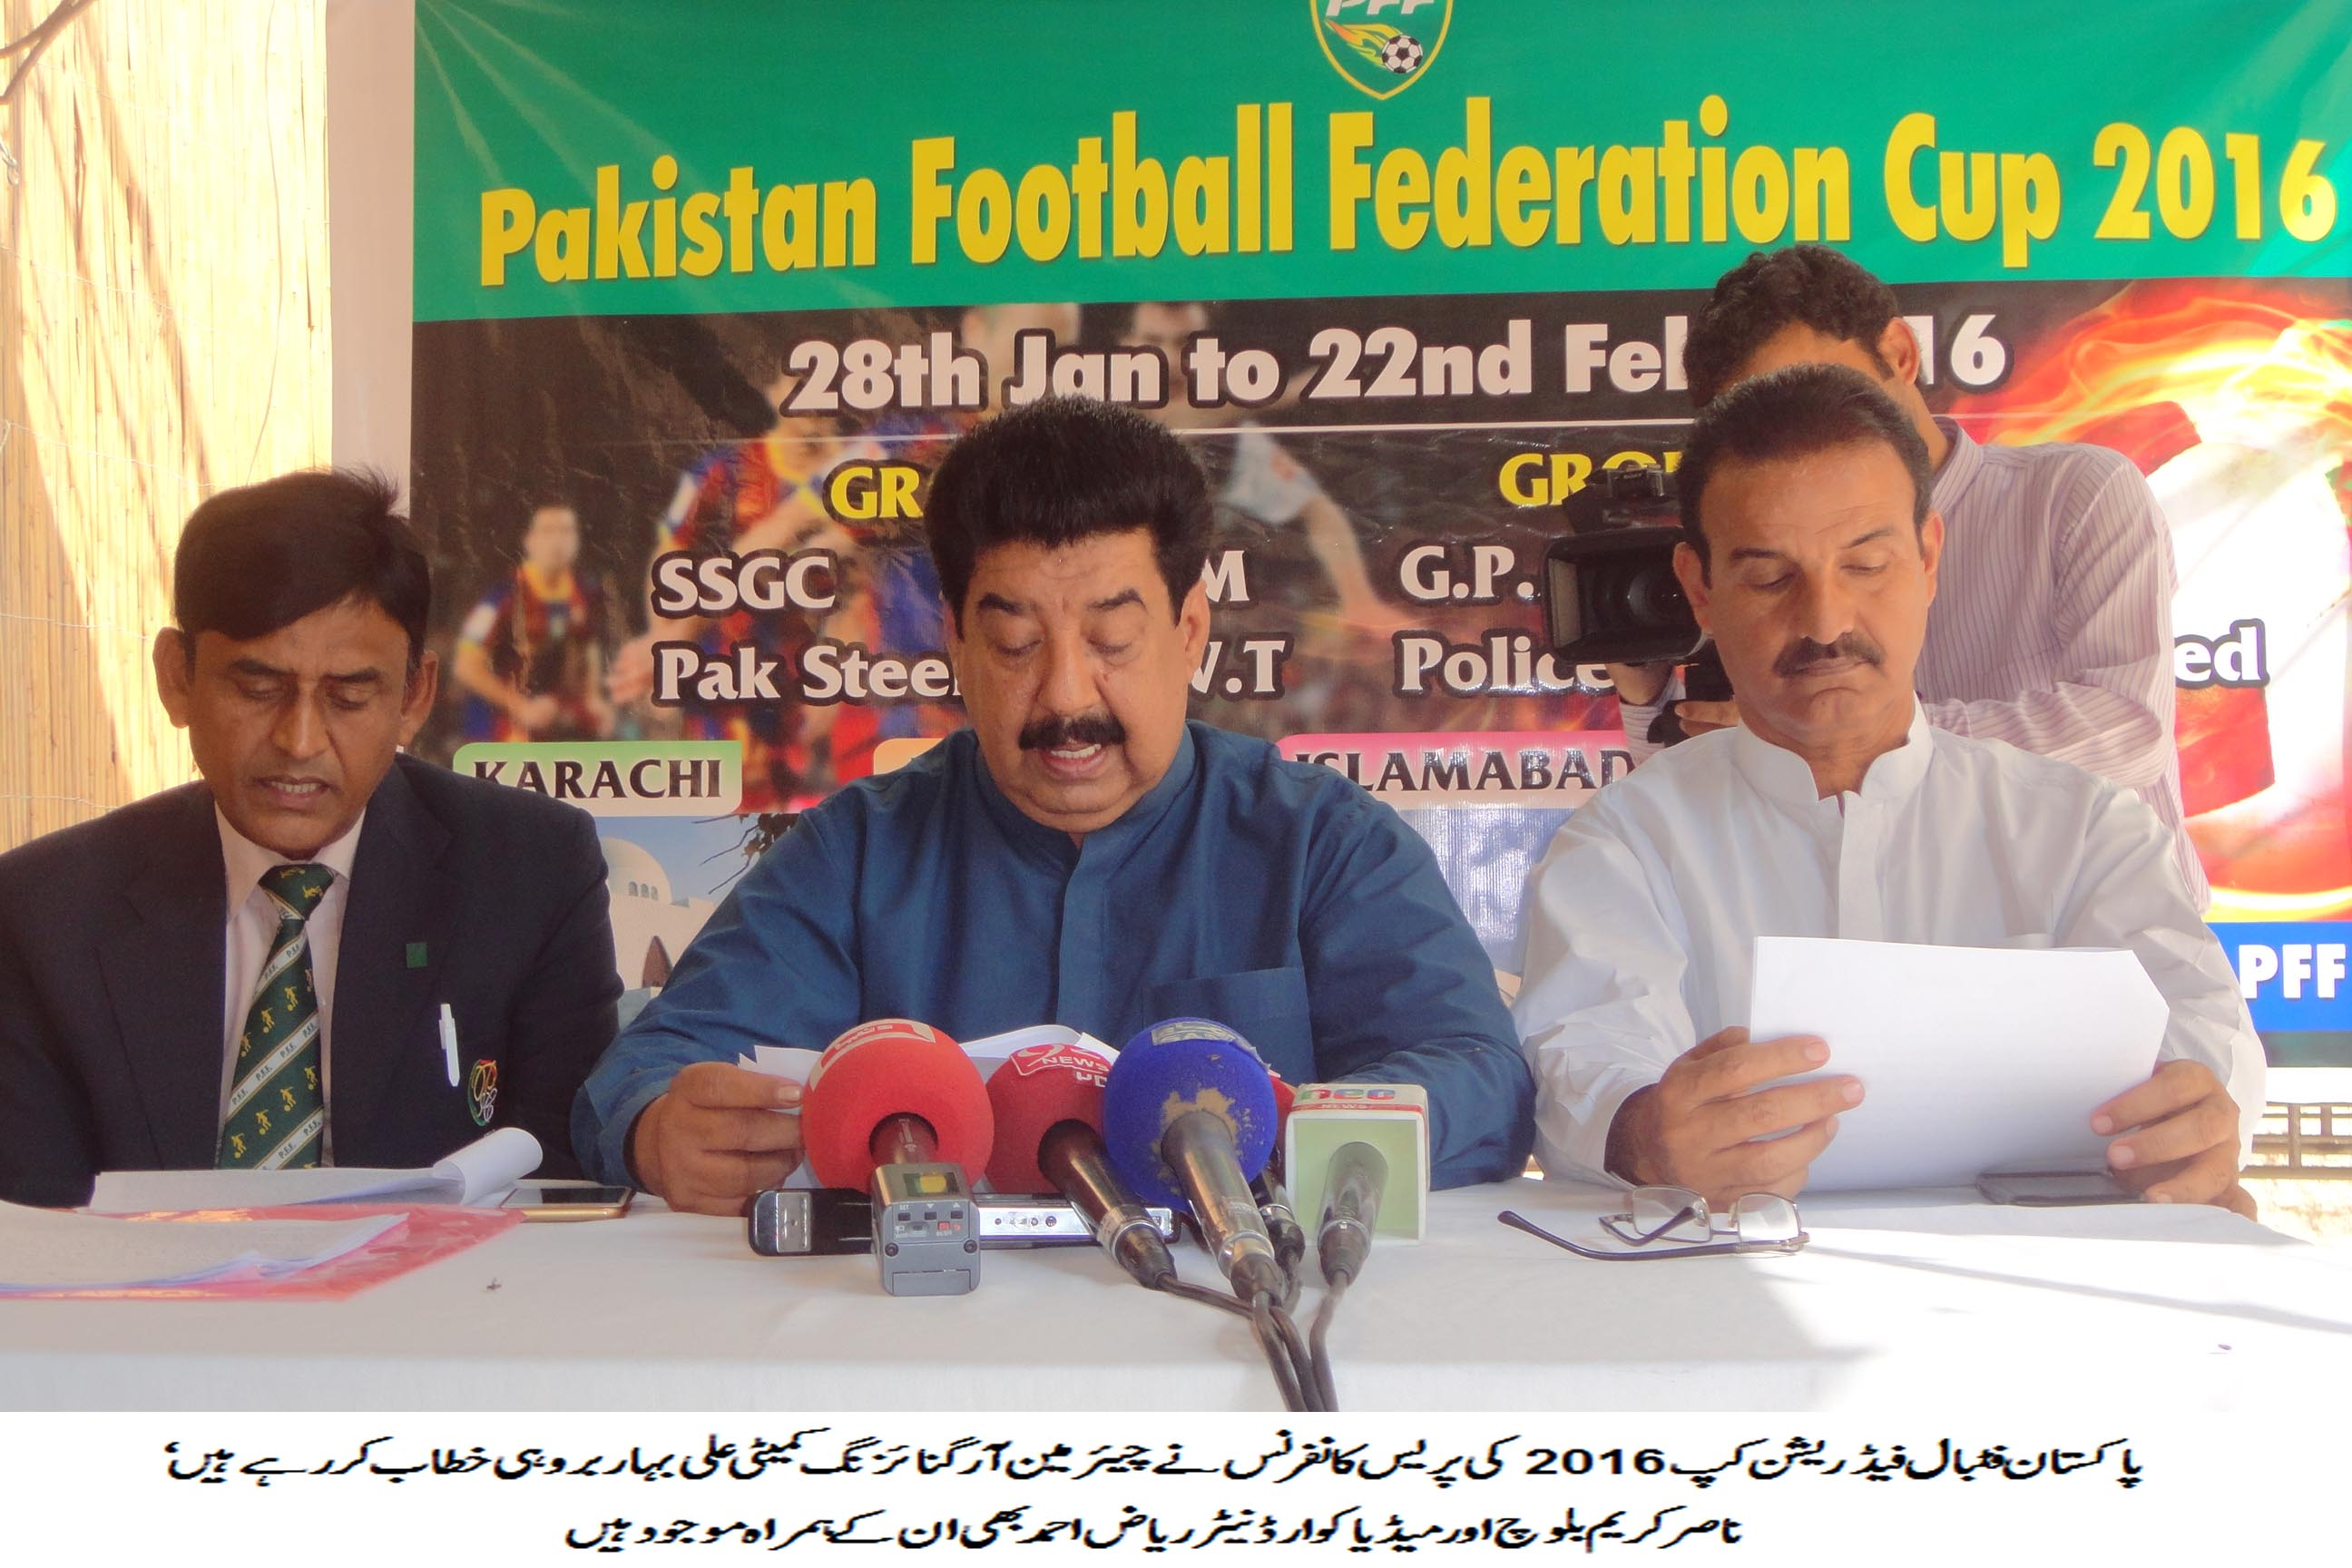 'LHC empowered administrator to hold PFF Cup' [DAWN]